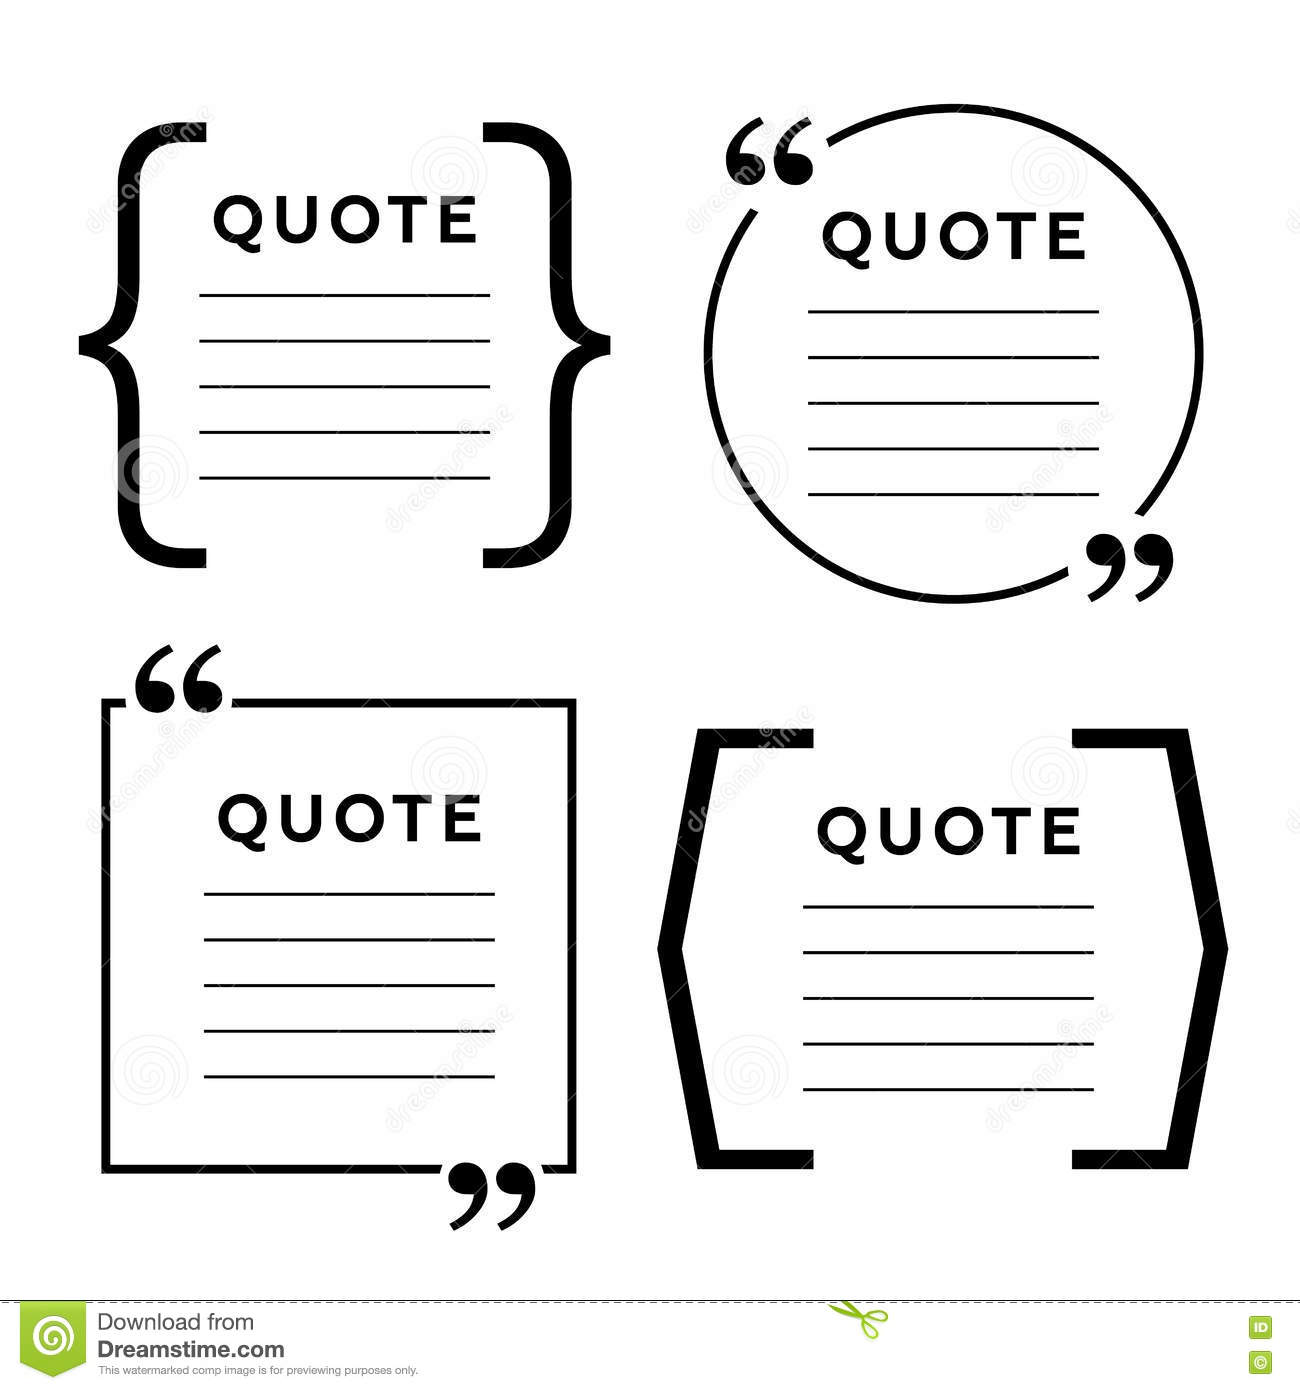 quotation form template